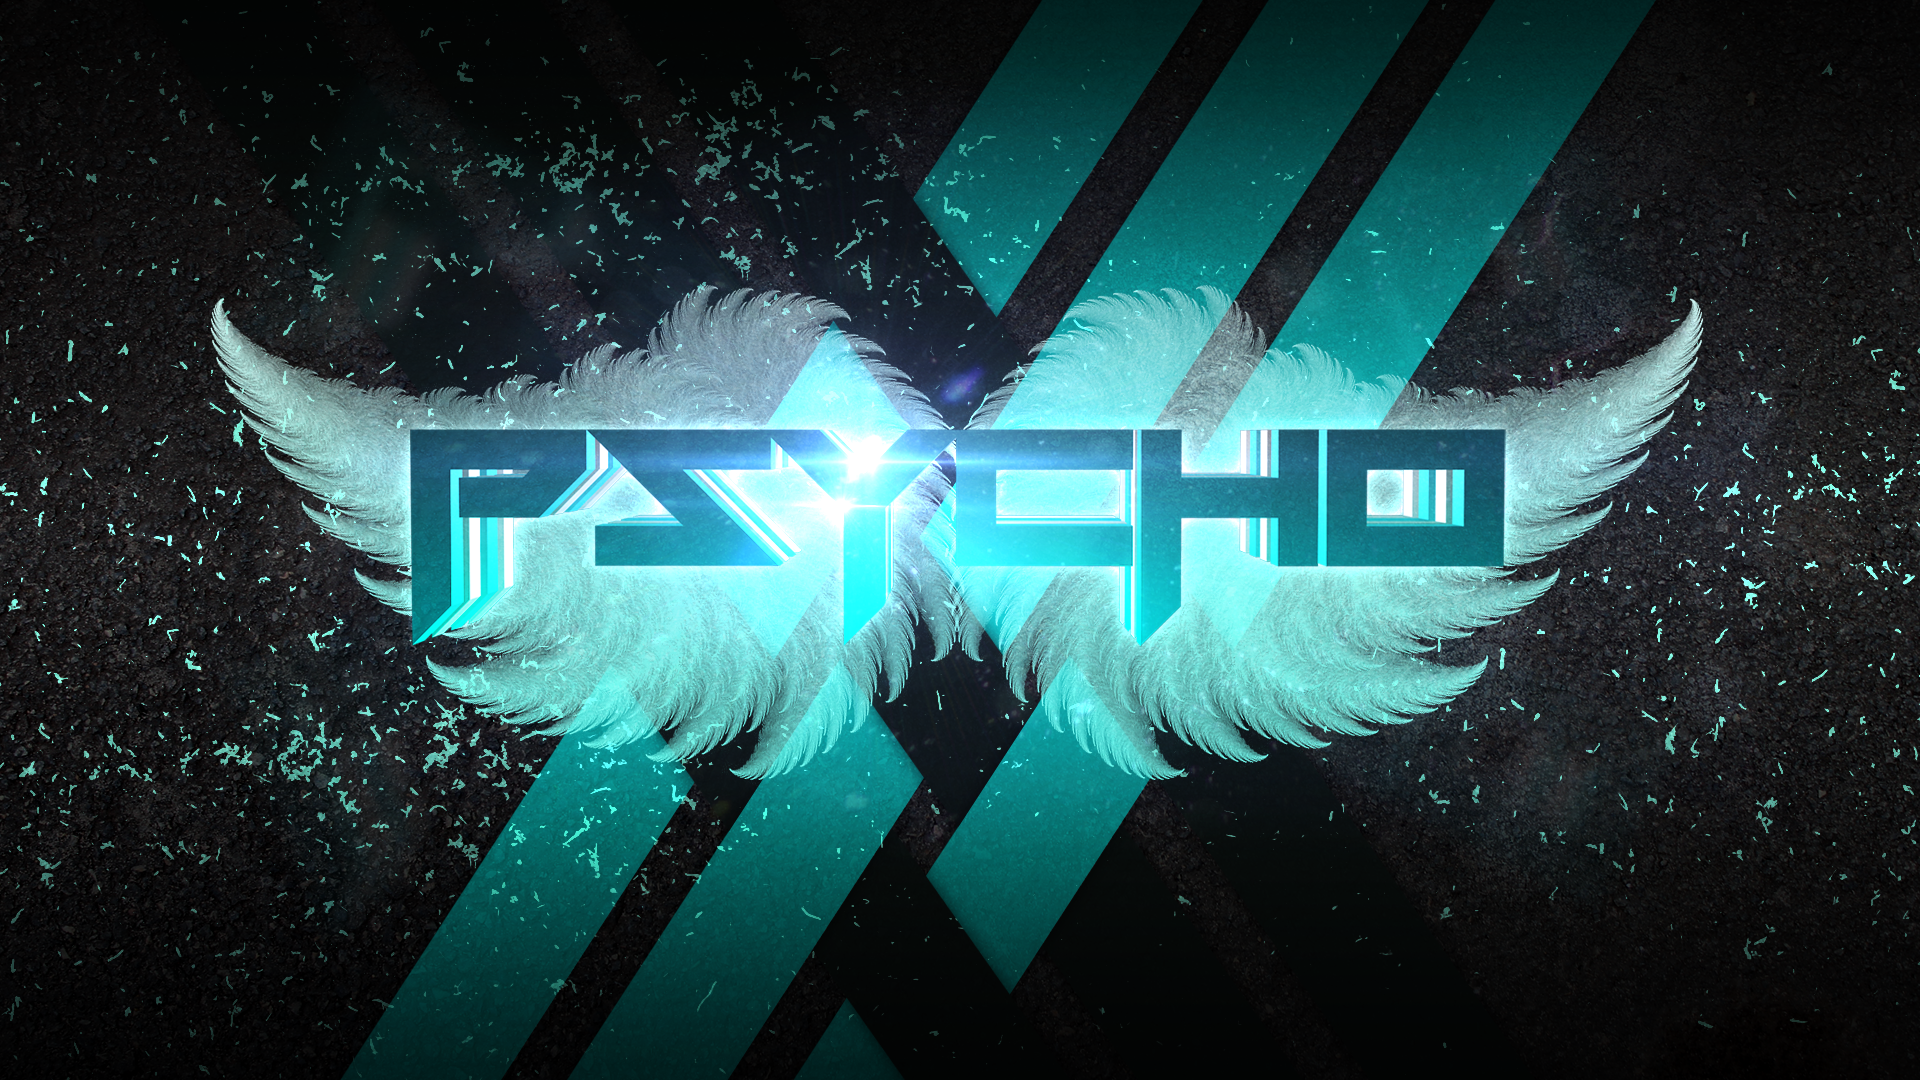 Wallpaper - Psycho 3D by Andre-DS on